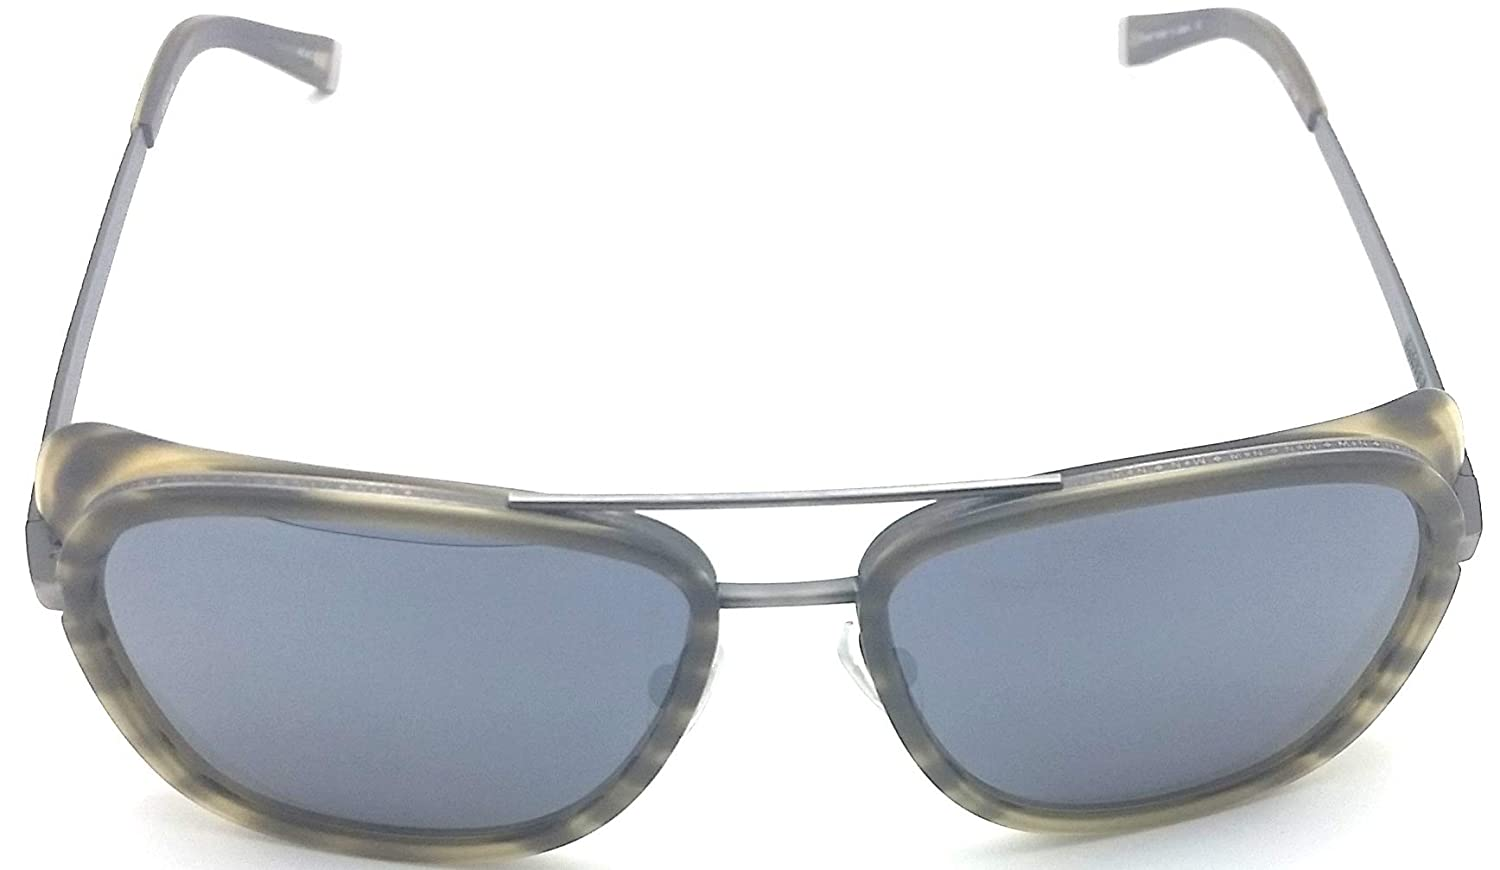 Amazon.com: Matsuda M3023 Iron Man 3 - Gafas de sol AS-MOG ...